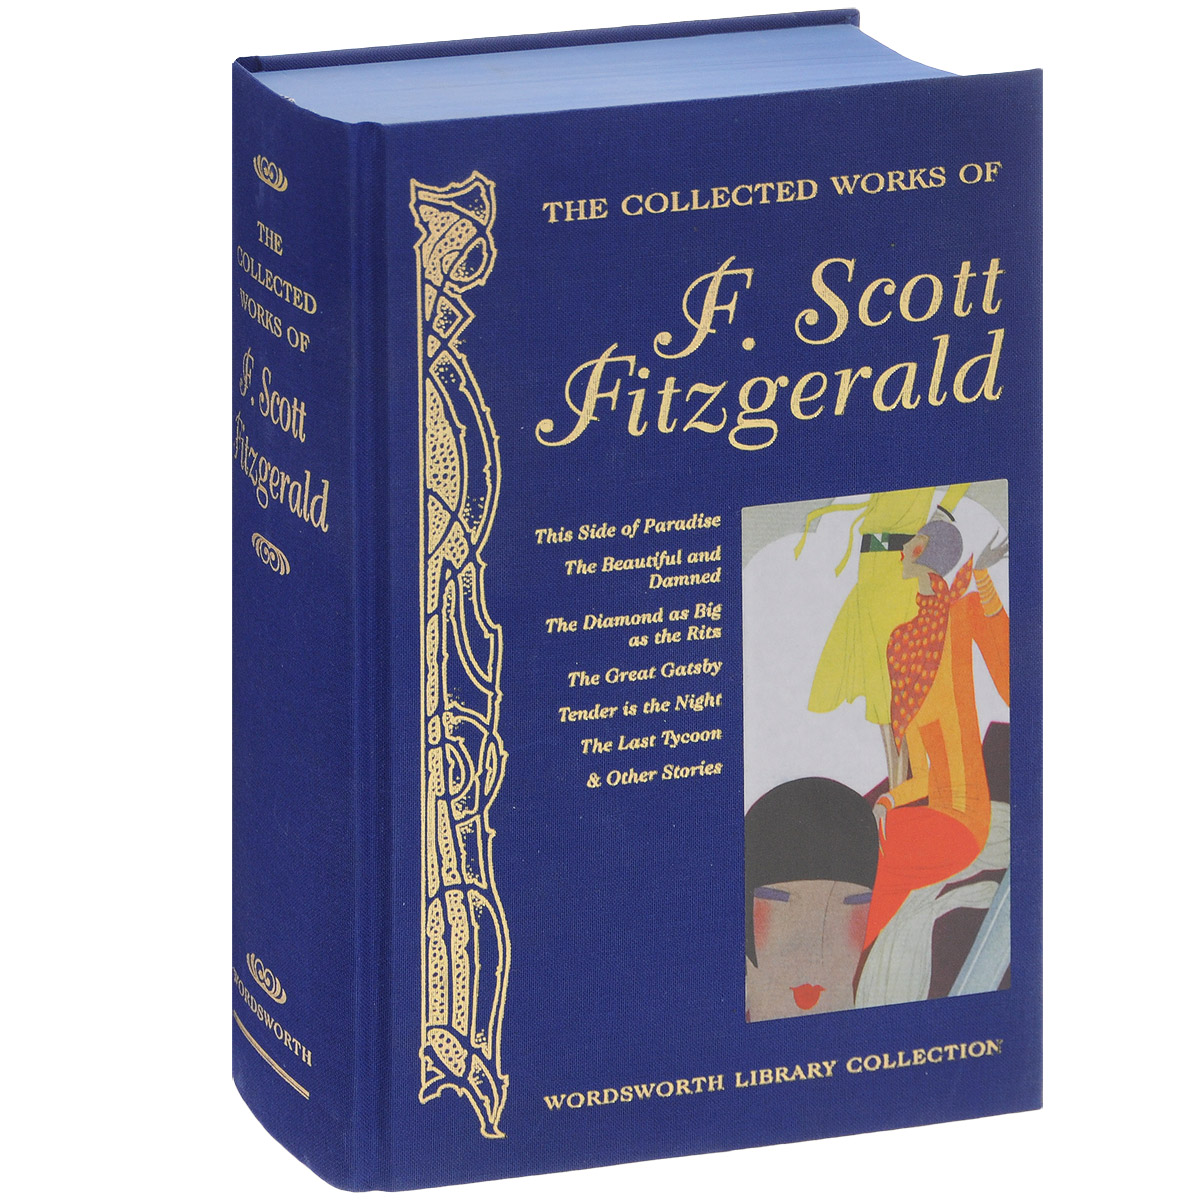 The Collected Works of F. Scott Fitzgerald fitzgerald s tales of the jazz age